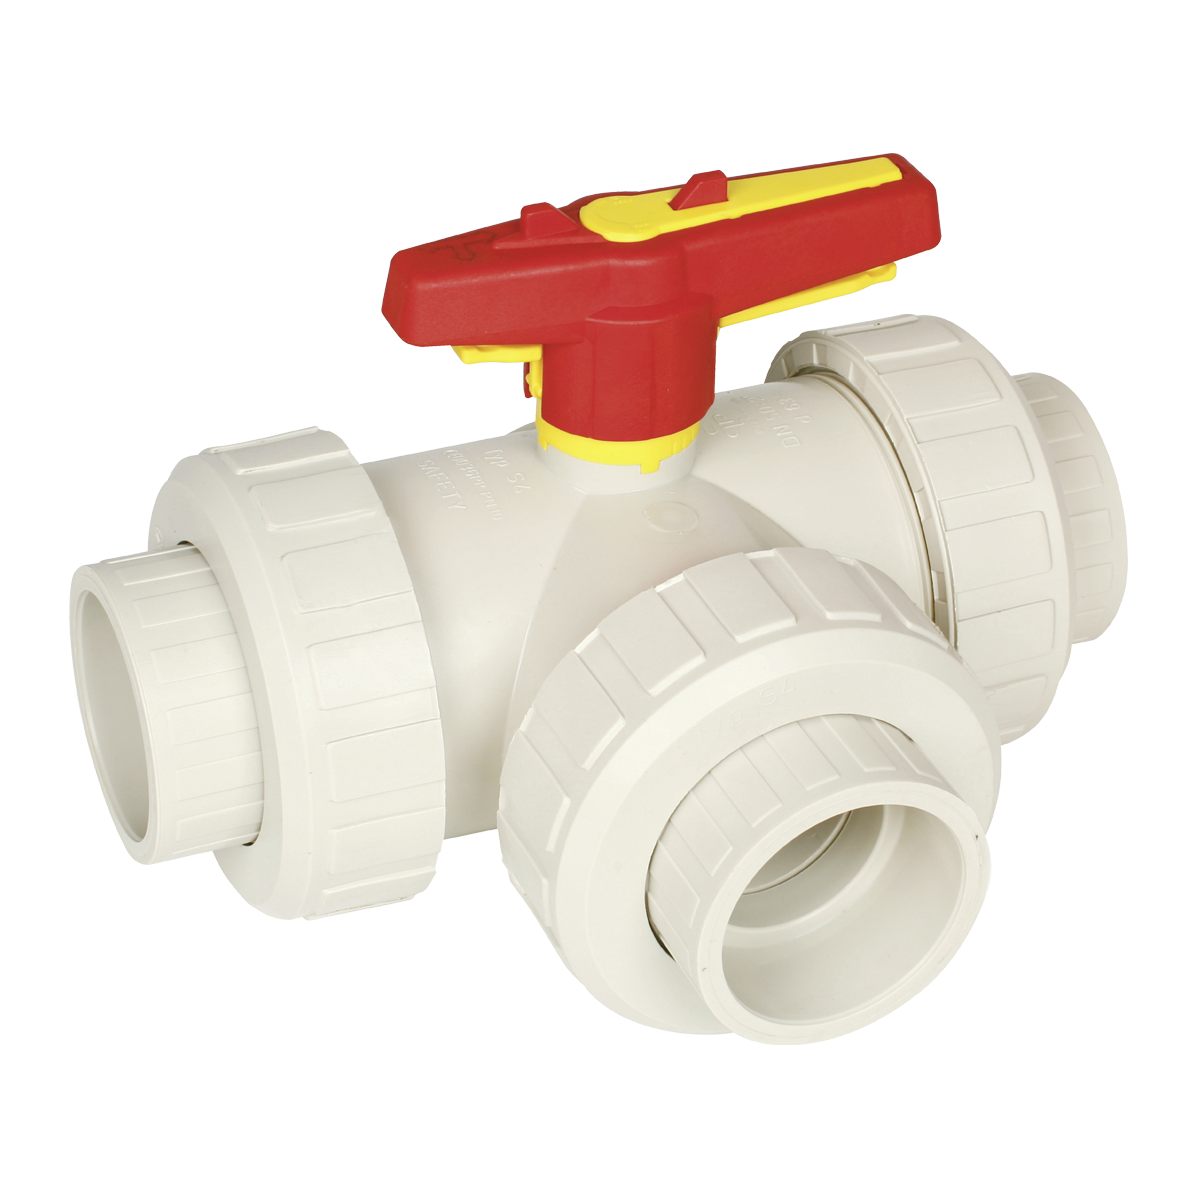 Praher 3-way ball valve S4 PP, beige, yellow, red